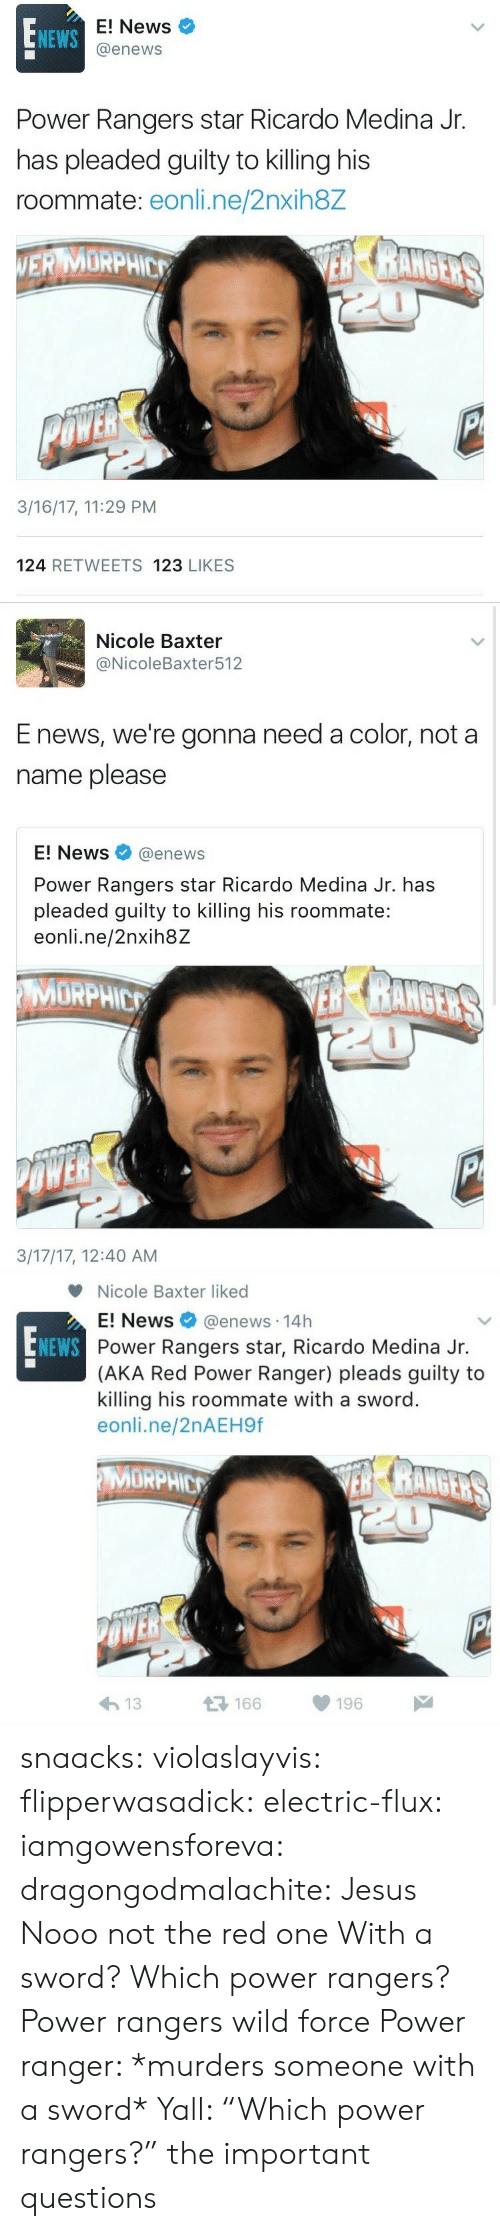 "Rangers: E! News  @enews  NEWS  Power Rangers star Ricardo Medina Jr.  has pleaded guilty to killing his  roommate: eonli.ne/2nxih8Z  ERMORPHE  3/16/17, 11:29 PM  124 RETWEETS 123 LIKES   Nicole Baxter  @NicoleBaxter512  E news, we're gonna need a color, not a  name please  E! News@enews  Power Rangers star Ricardo Medina Jr. has  pleaded guilty to killing his roommate:  eonli.ne/2nxih8Z  MORPHIC  3/17/17, 12:40 AM   Nicole Baxter liked  E! News @enews. 14h  Power Rangers star, Ricardo Medina Jr.  (AKA Red Power Ranger) pleads guilty to  killing his roommate with a sword  eonli.ne/2nAEH9f  NEWS  MORPHIC  μέ  166  196  わ13 snaacks:  violaslayvis: flipperwasadick:  electric-flux:   iamgowensforeva:   dragongodmalachite:  Jesus  Nooo not the red one   With a sword?  Which power rangers?   Power rangers wild force   Power ranger: *murders someone with a sword* Yall: ""Which power rangers?""   the important questions"